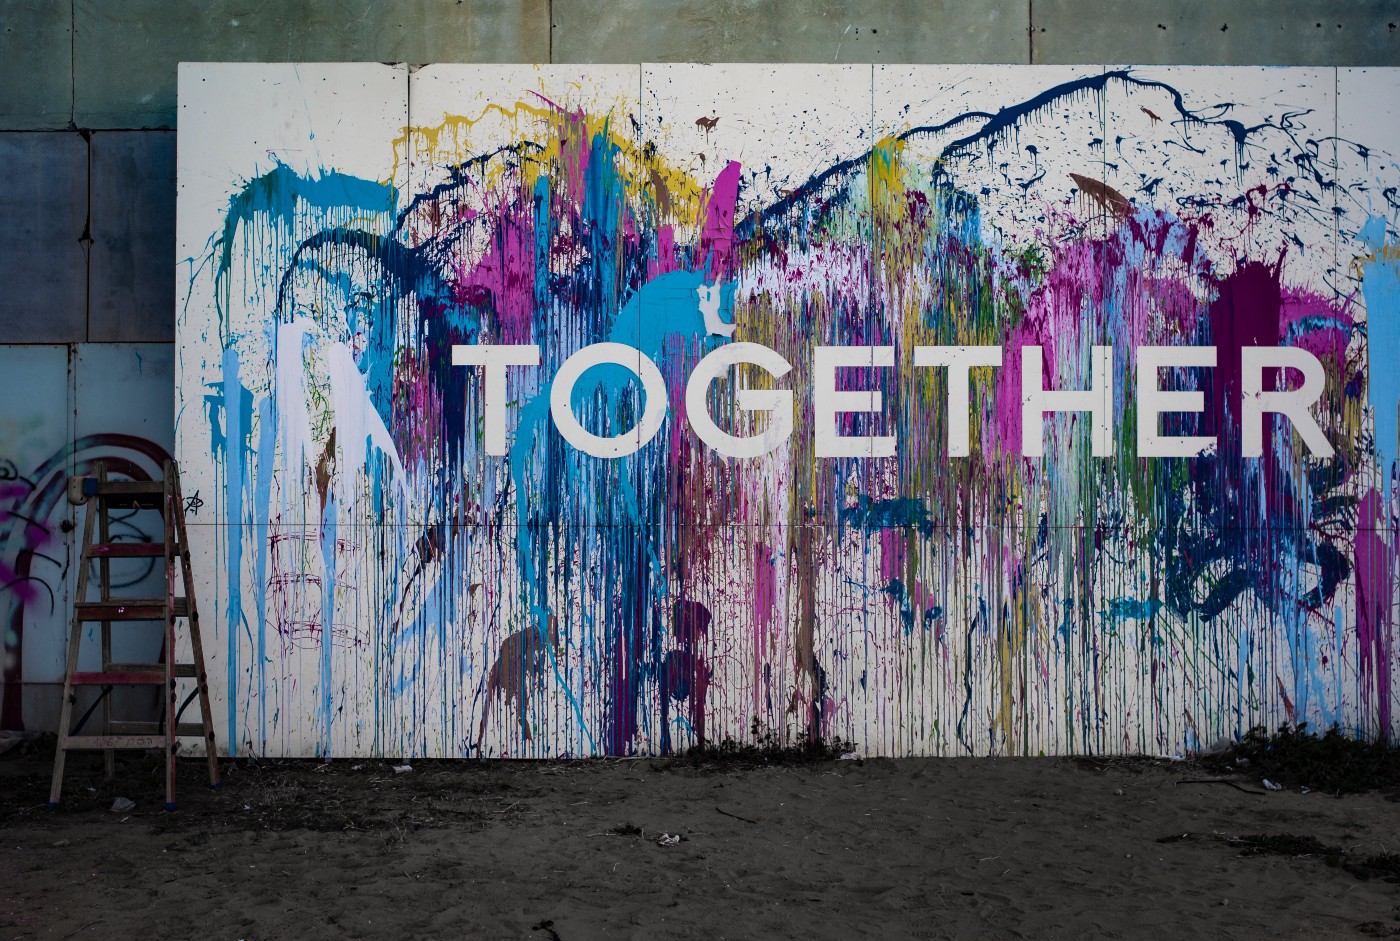 Graffiti against a colourful wall reading 'together'